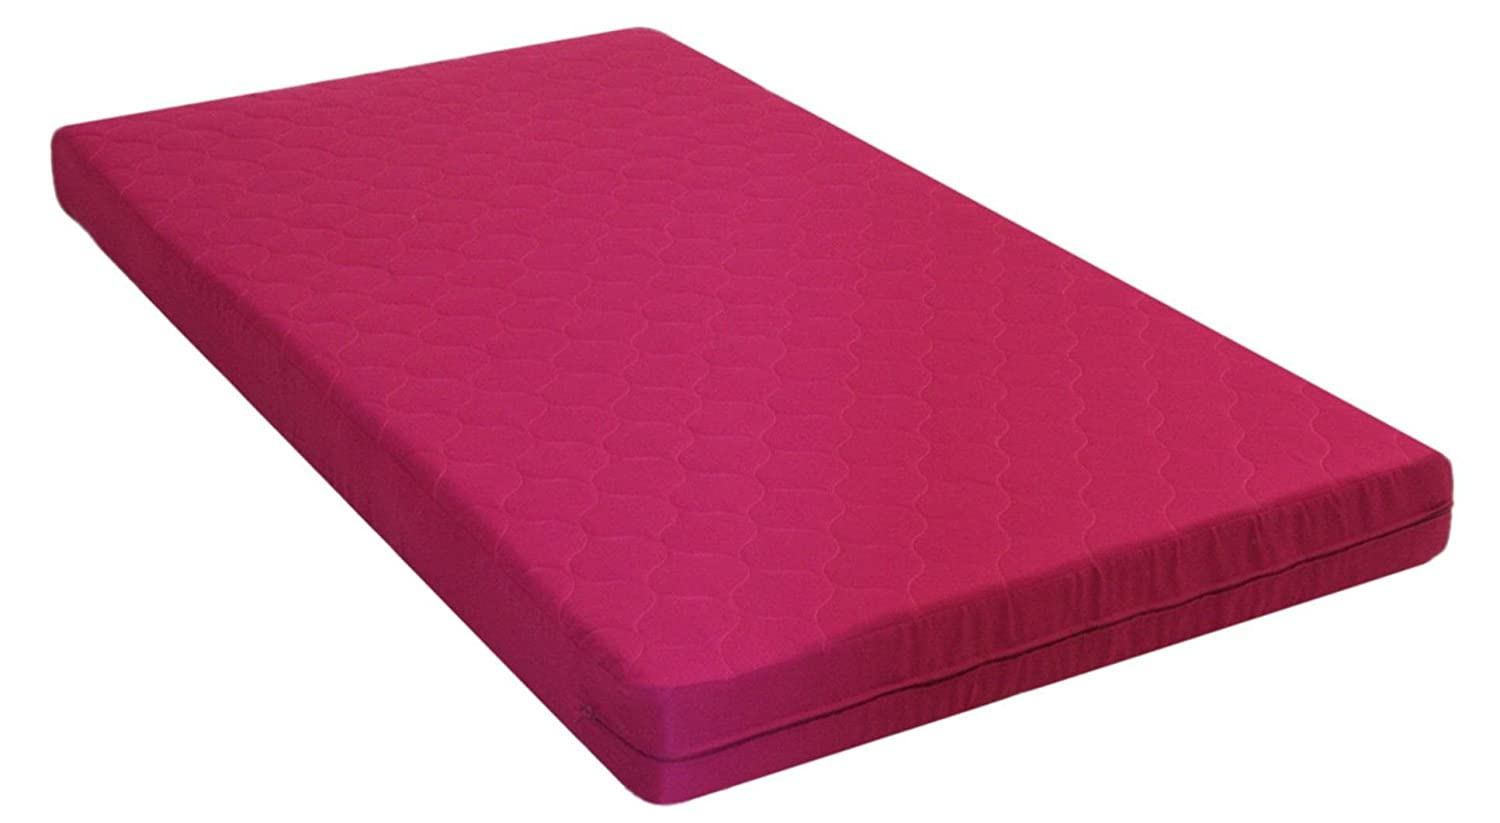 Amazon.com: DHP 6-inch Quilted Mattress, Perfect for Bunk Beds ... : 6 twin quilted bunk bed mattress - Adamdwight.com